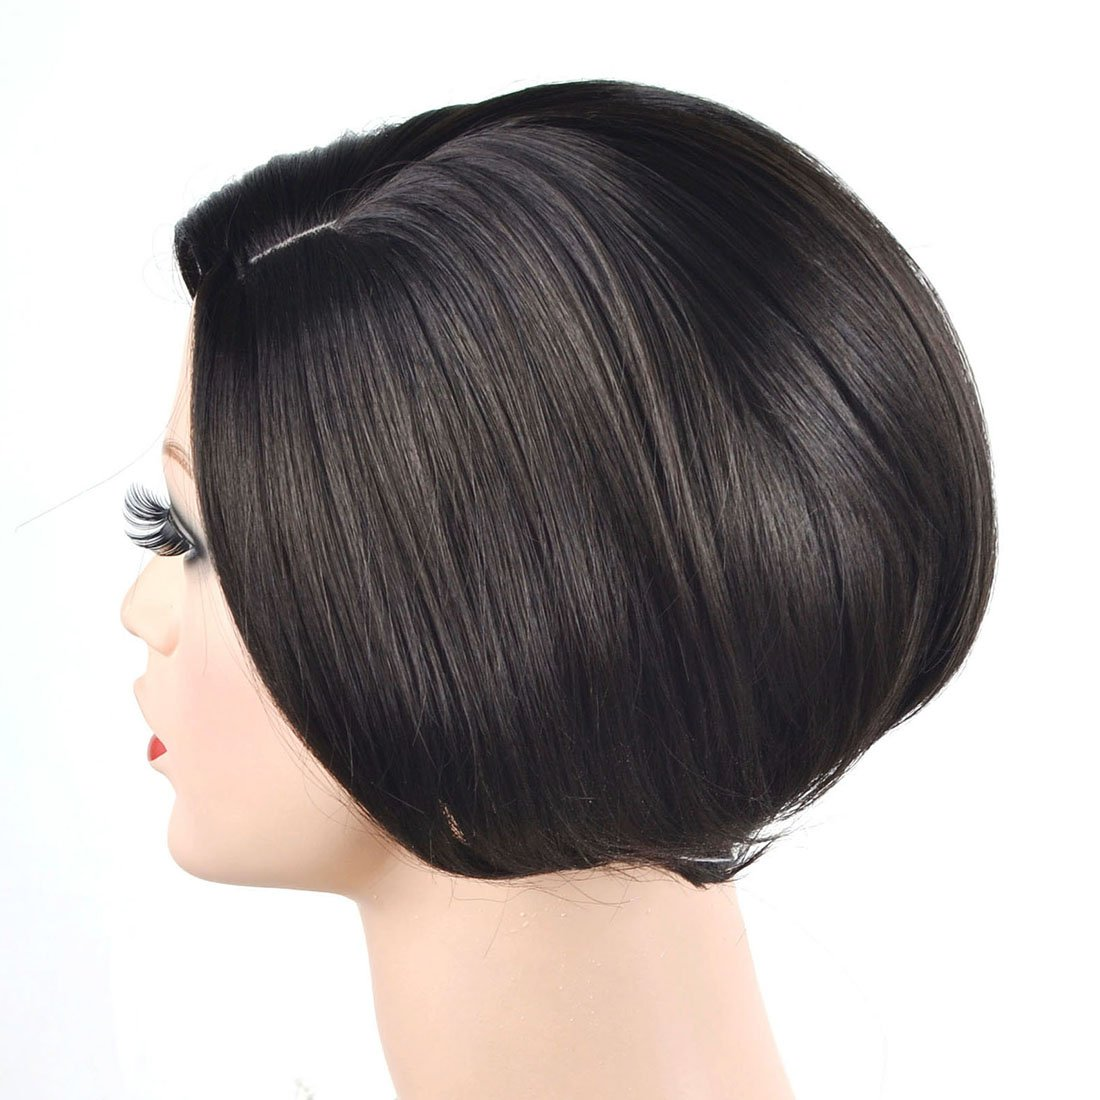 Coolsky Wig OL Short Black Woman Hair For Party or Daily Life Cosplay by COOLSKY (Image #2)